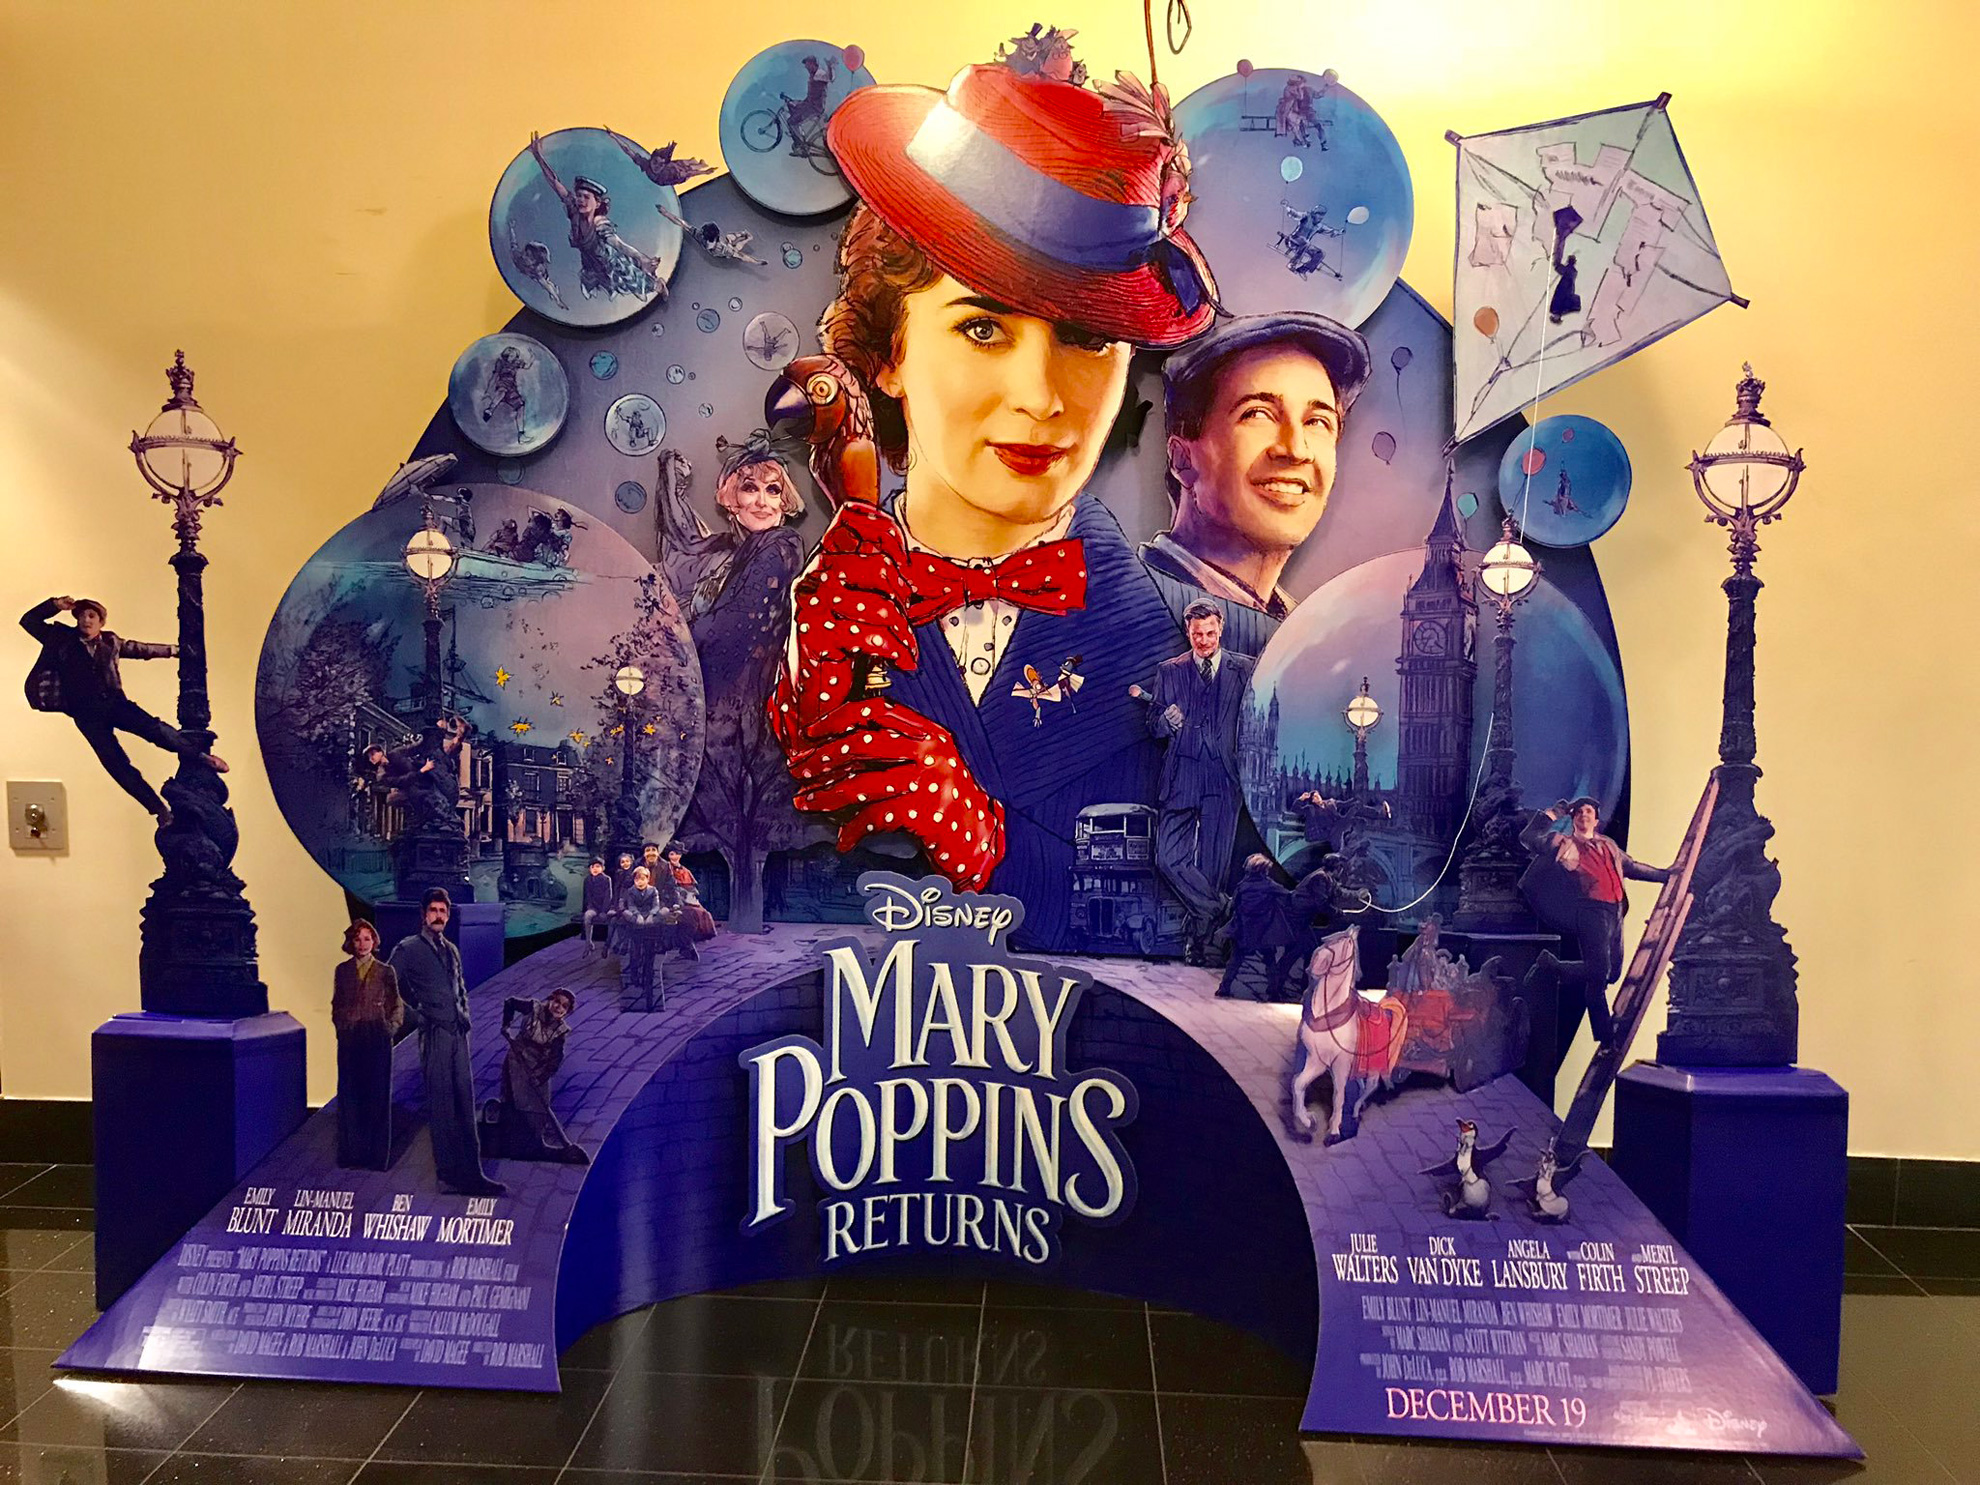 52 Mary Poppins Returns 2018 Wallpapers On Wallpapersafari